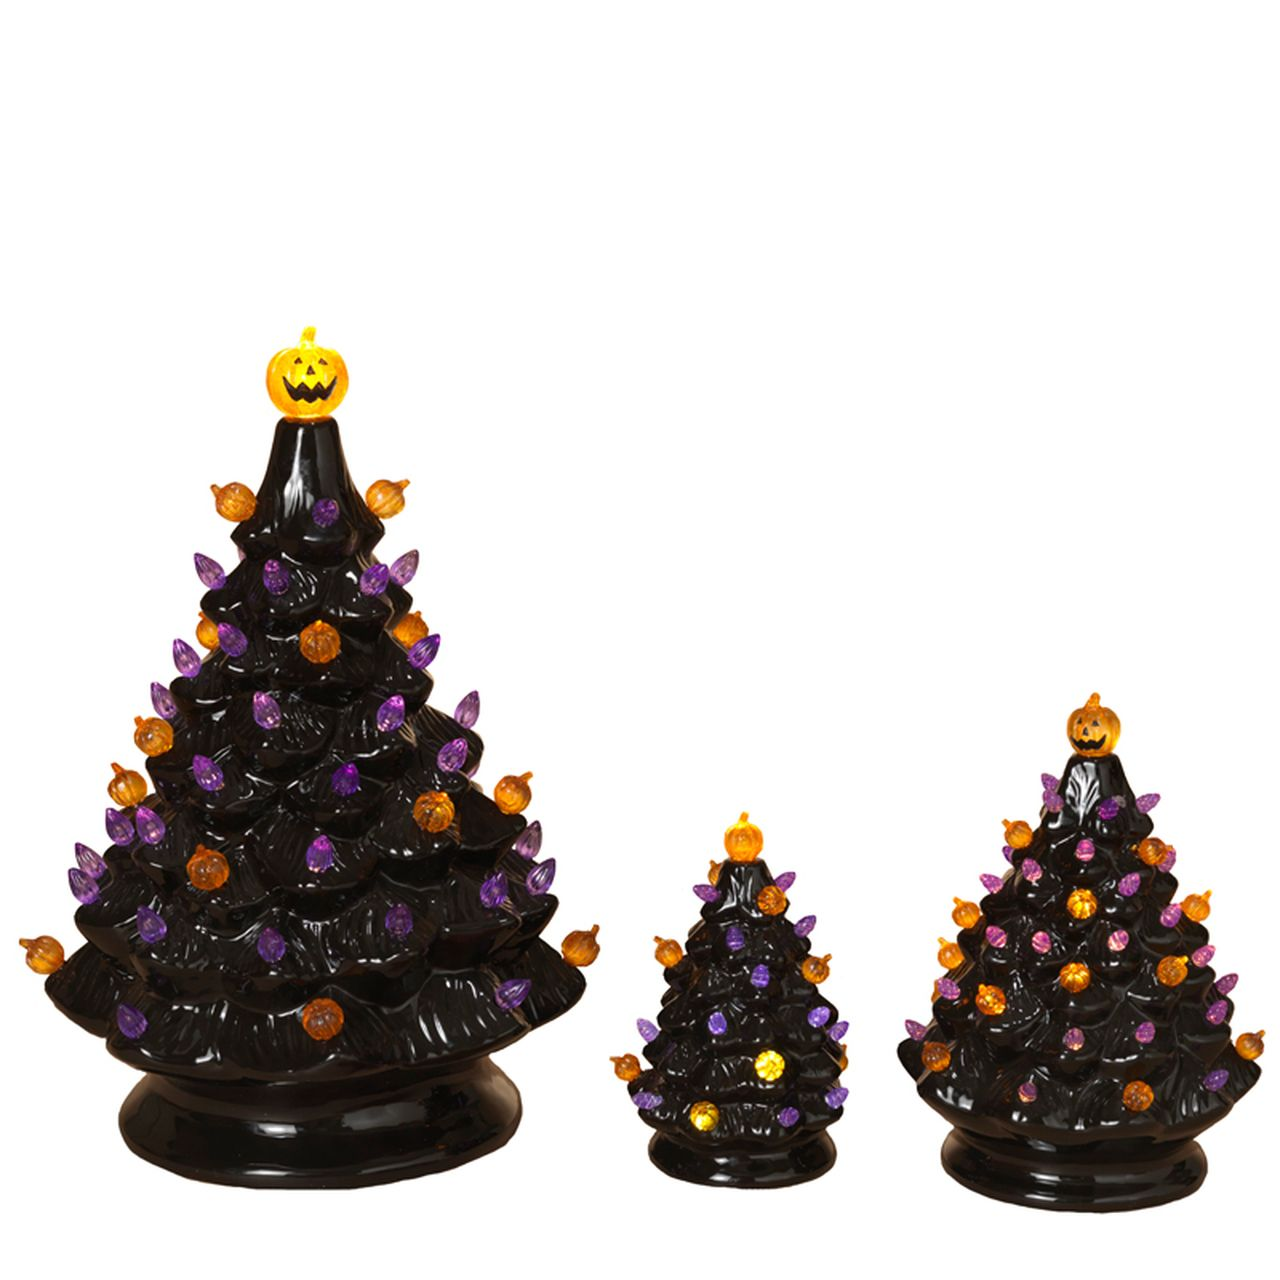 Battery Operated Lighted Halloween Ceramic Trees With Sound 2551760 In 2020 Vintage Halloween Decorations Halloween Decorations Halloween